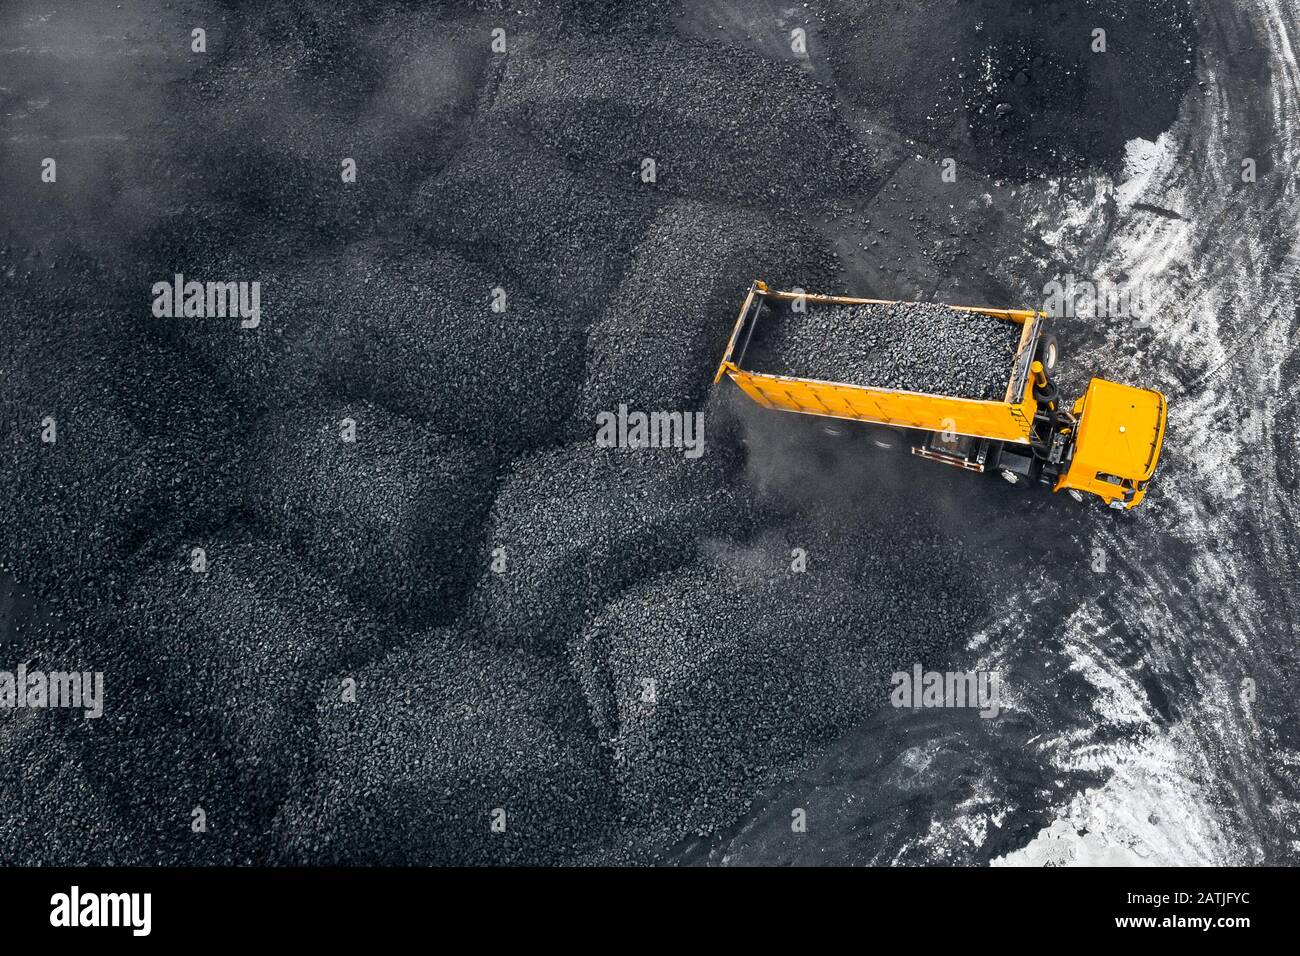 Open pit mine, extractive industry for coal, top view aerial drone Stock Photo